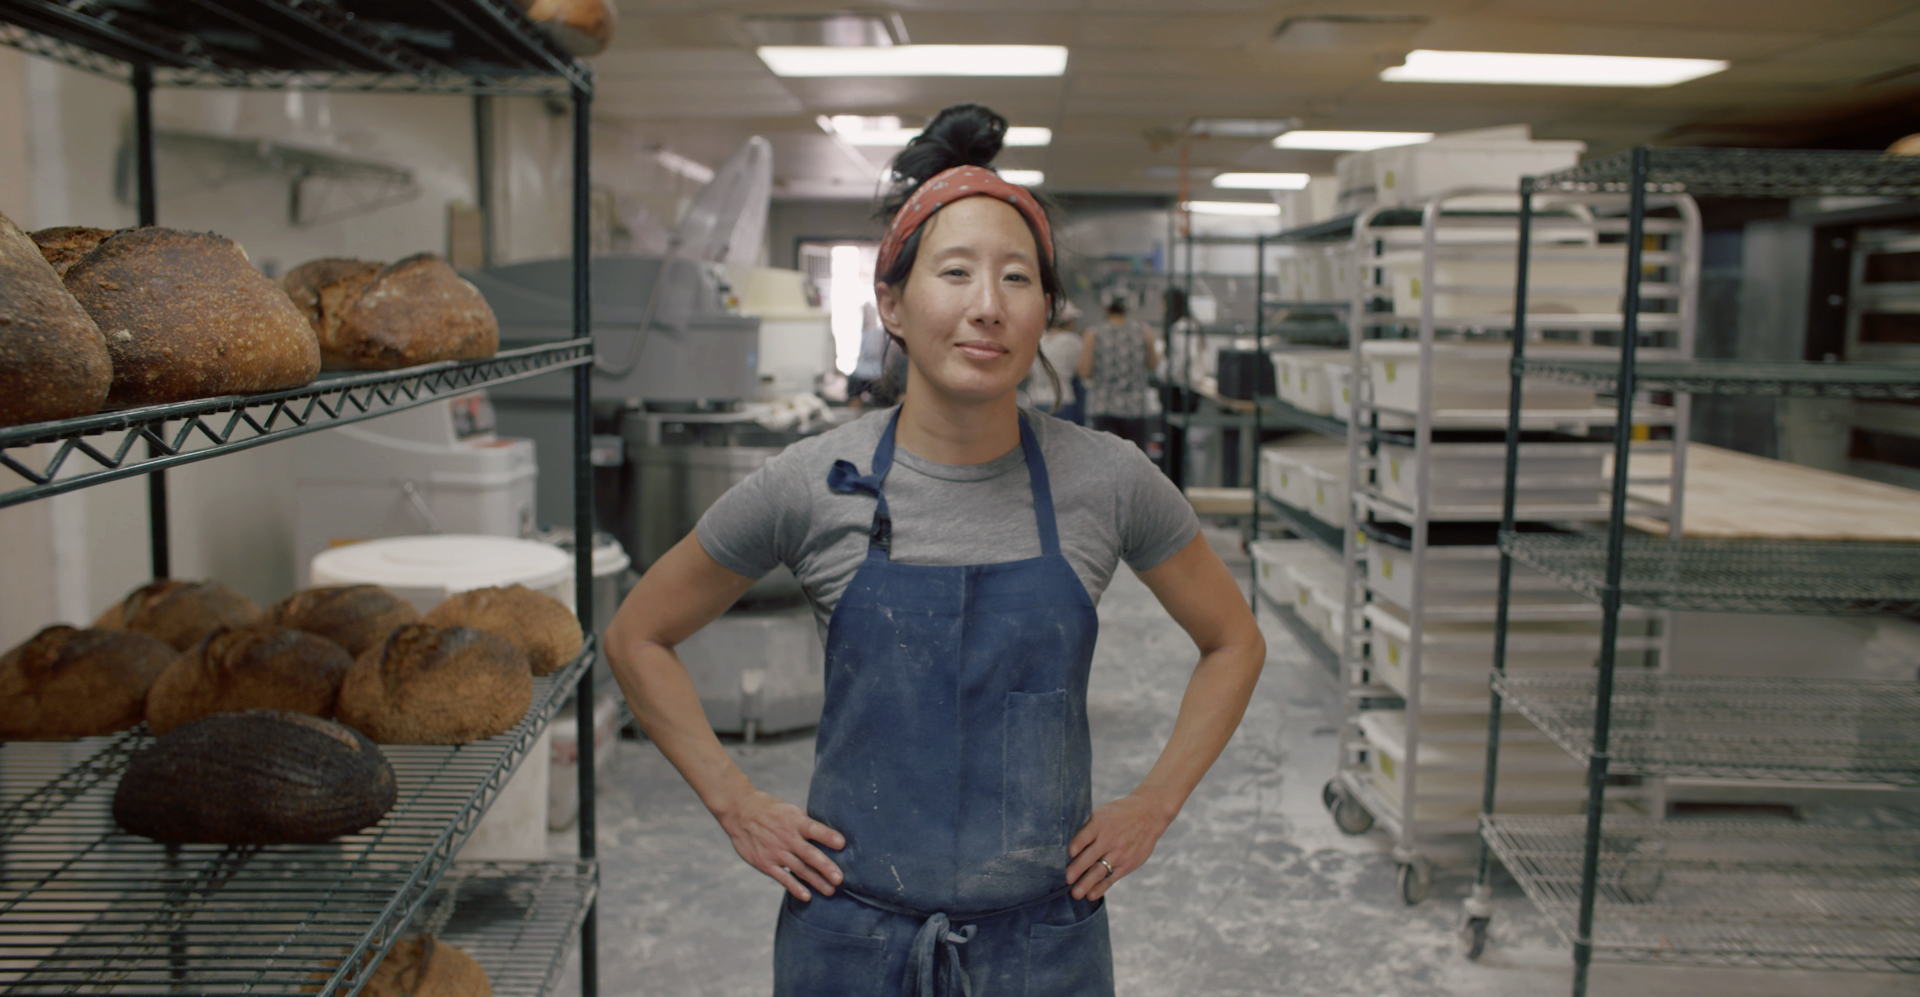 Harriet Hayes is a bread baker with Bub and Grandma's, a wholesale artisanal bread bakery in Silver Lake.